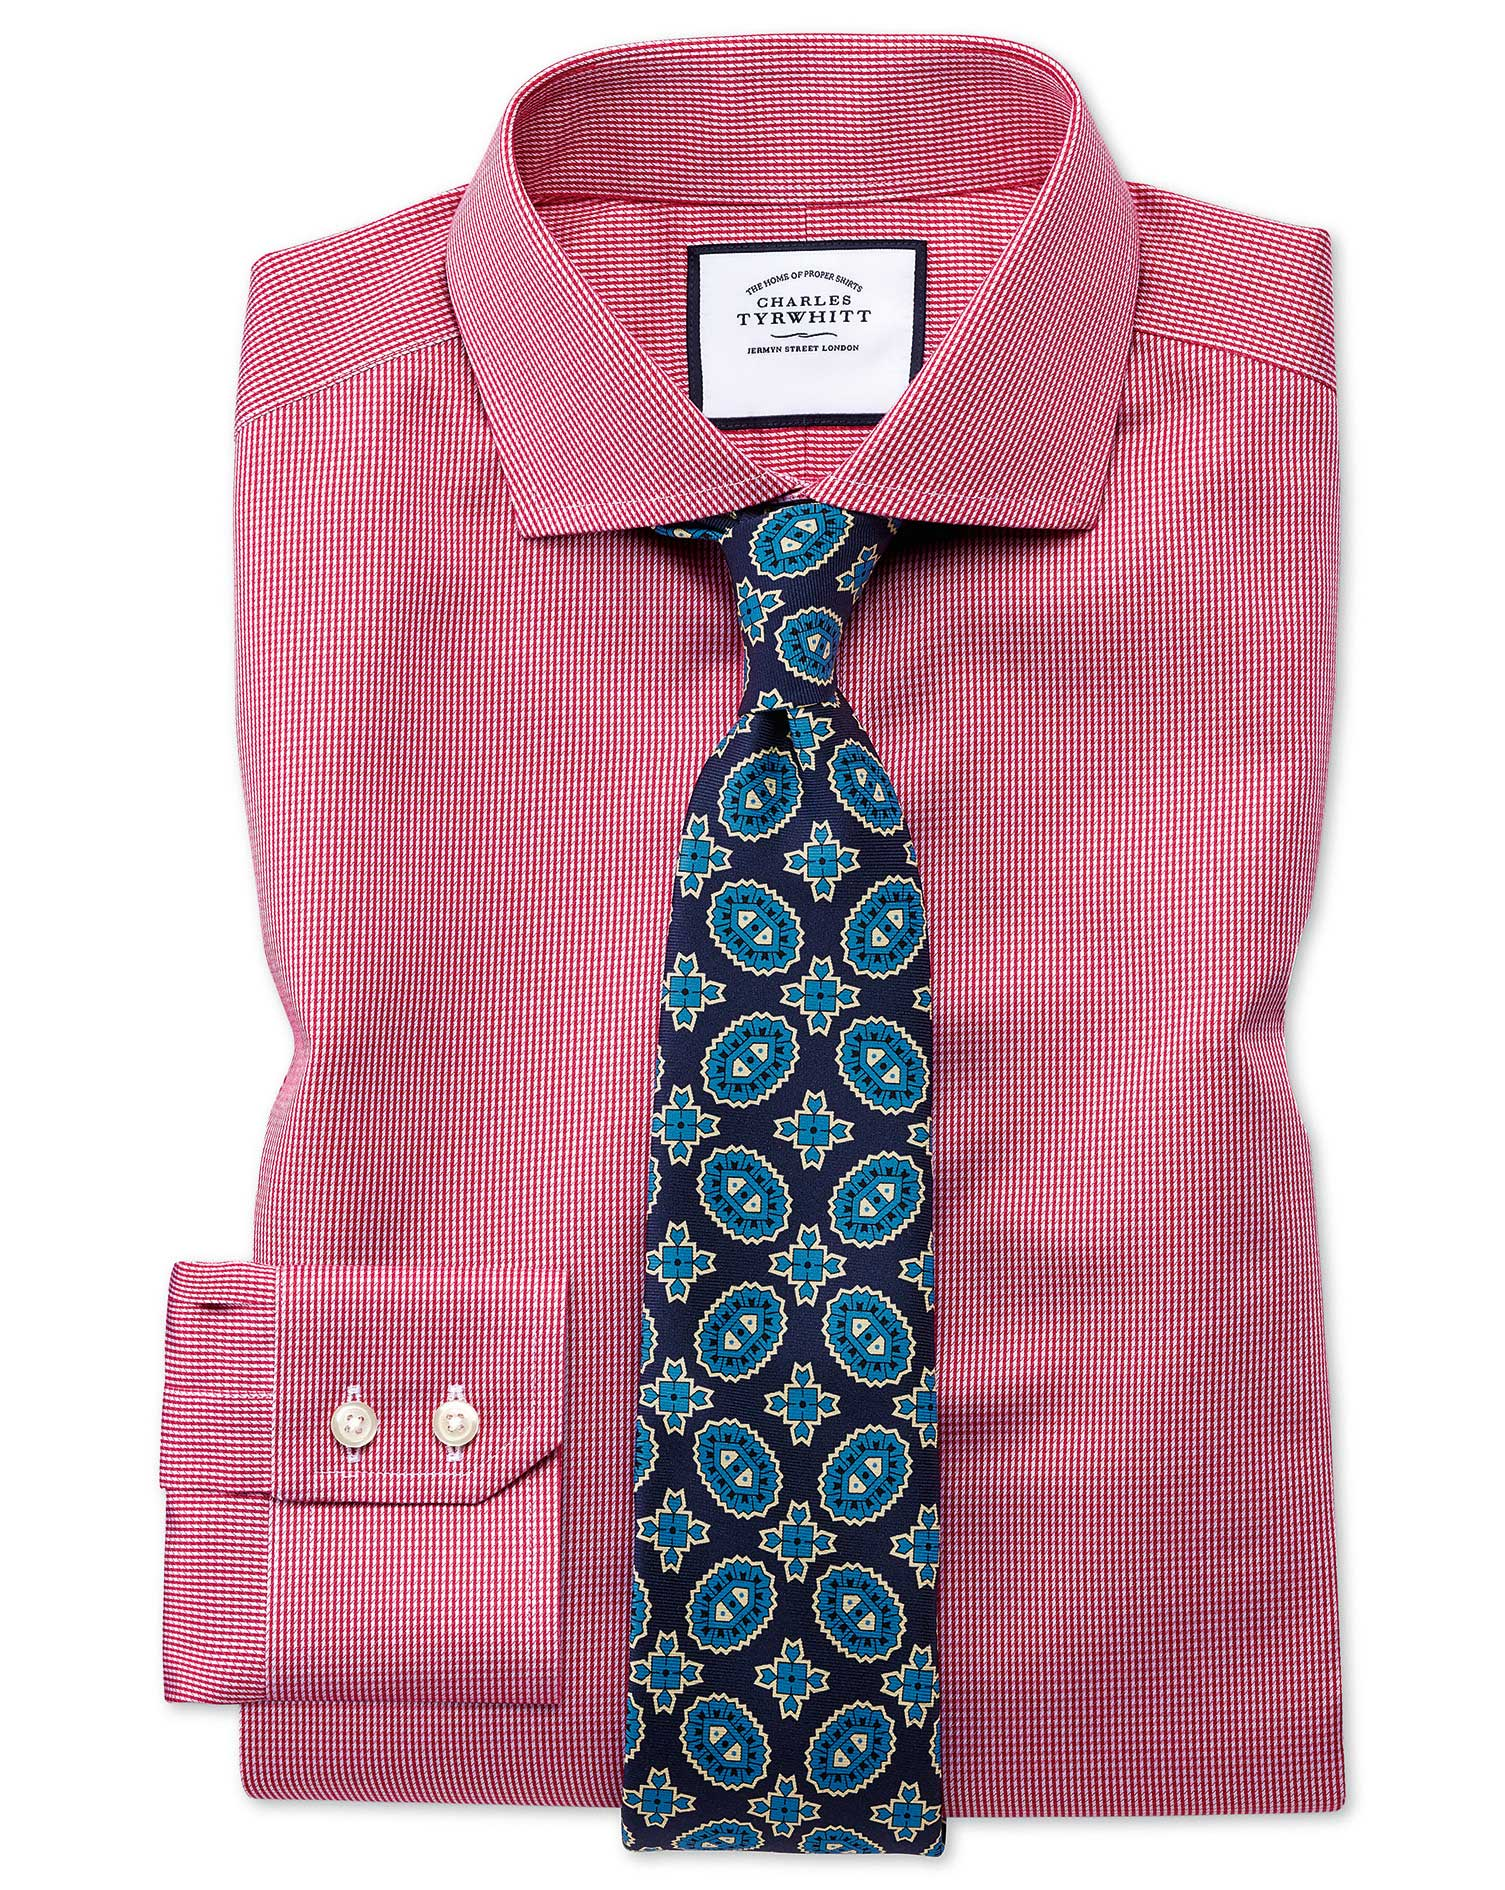 Extra Slim Fit Cutaway Collar Non-Iron Puppytooth Bright Pink Cotton Formal Shirt Double Cuff Size 16.5/34 by Charles Tyrwhitt from Charles Tyrwhitt